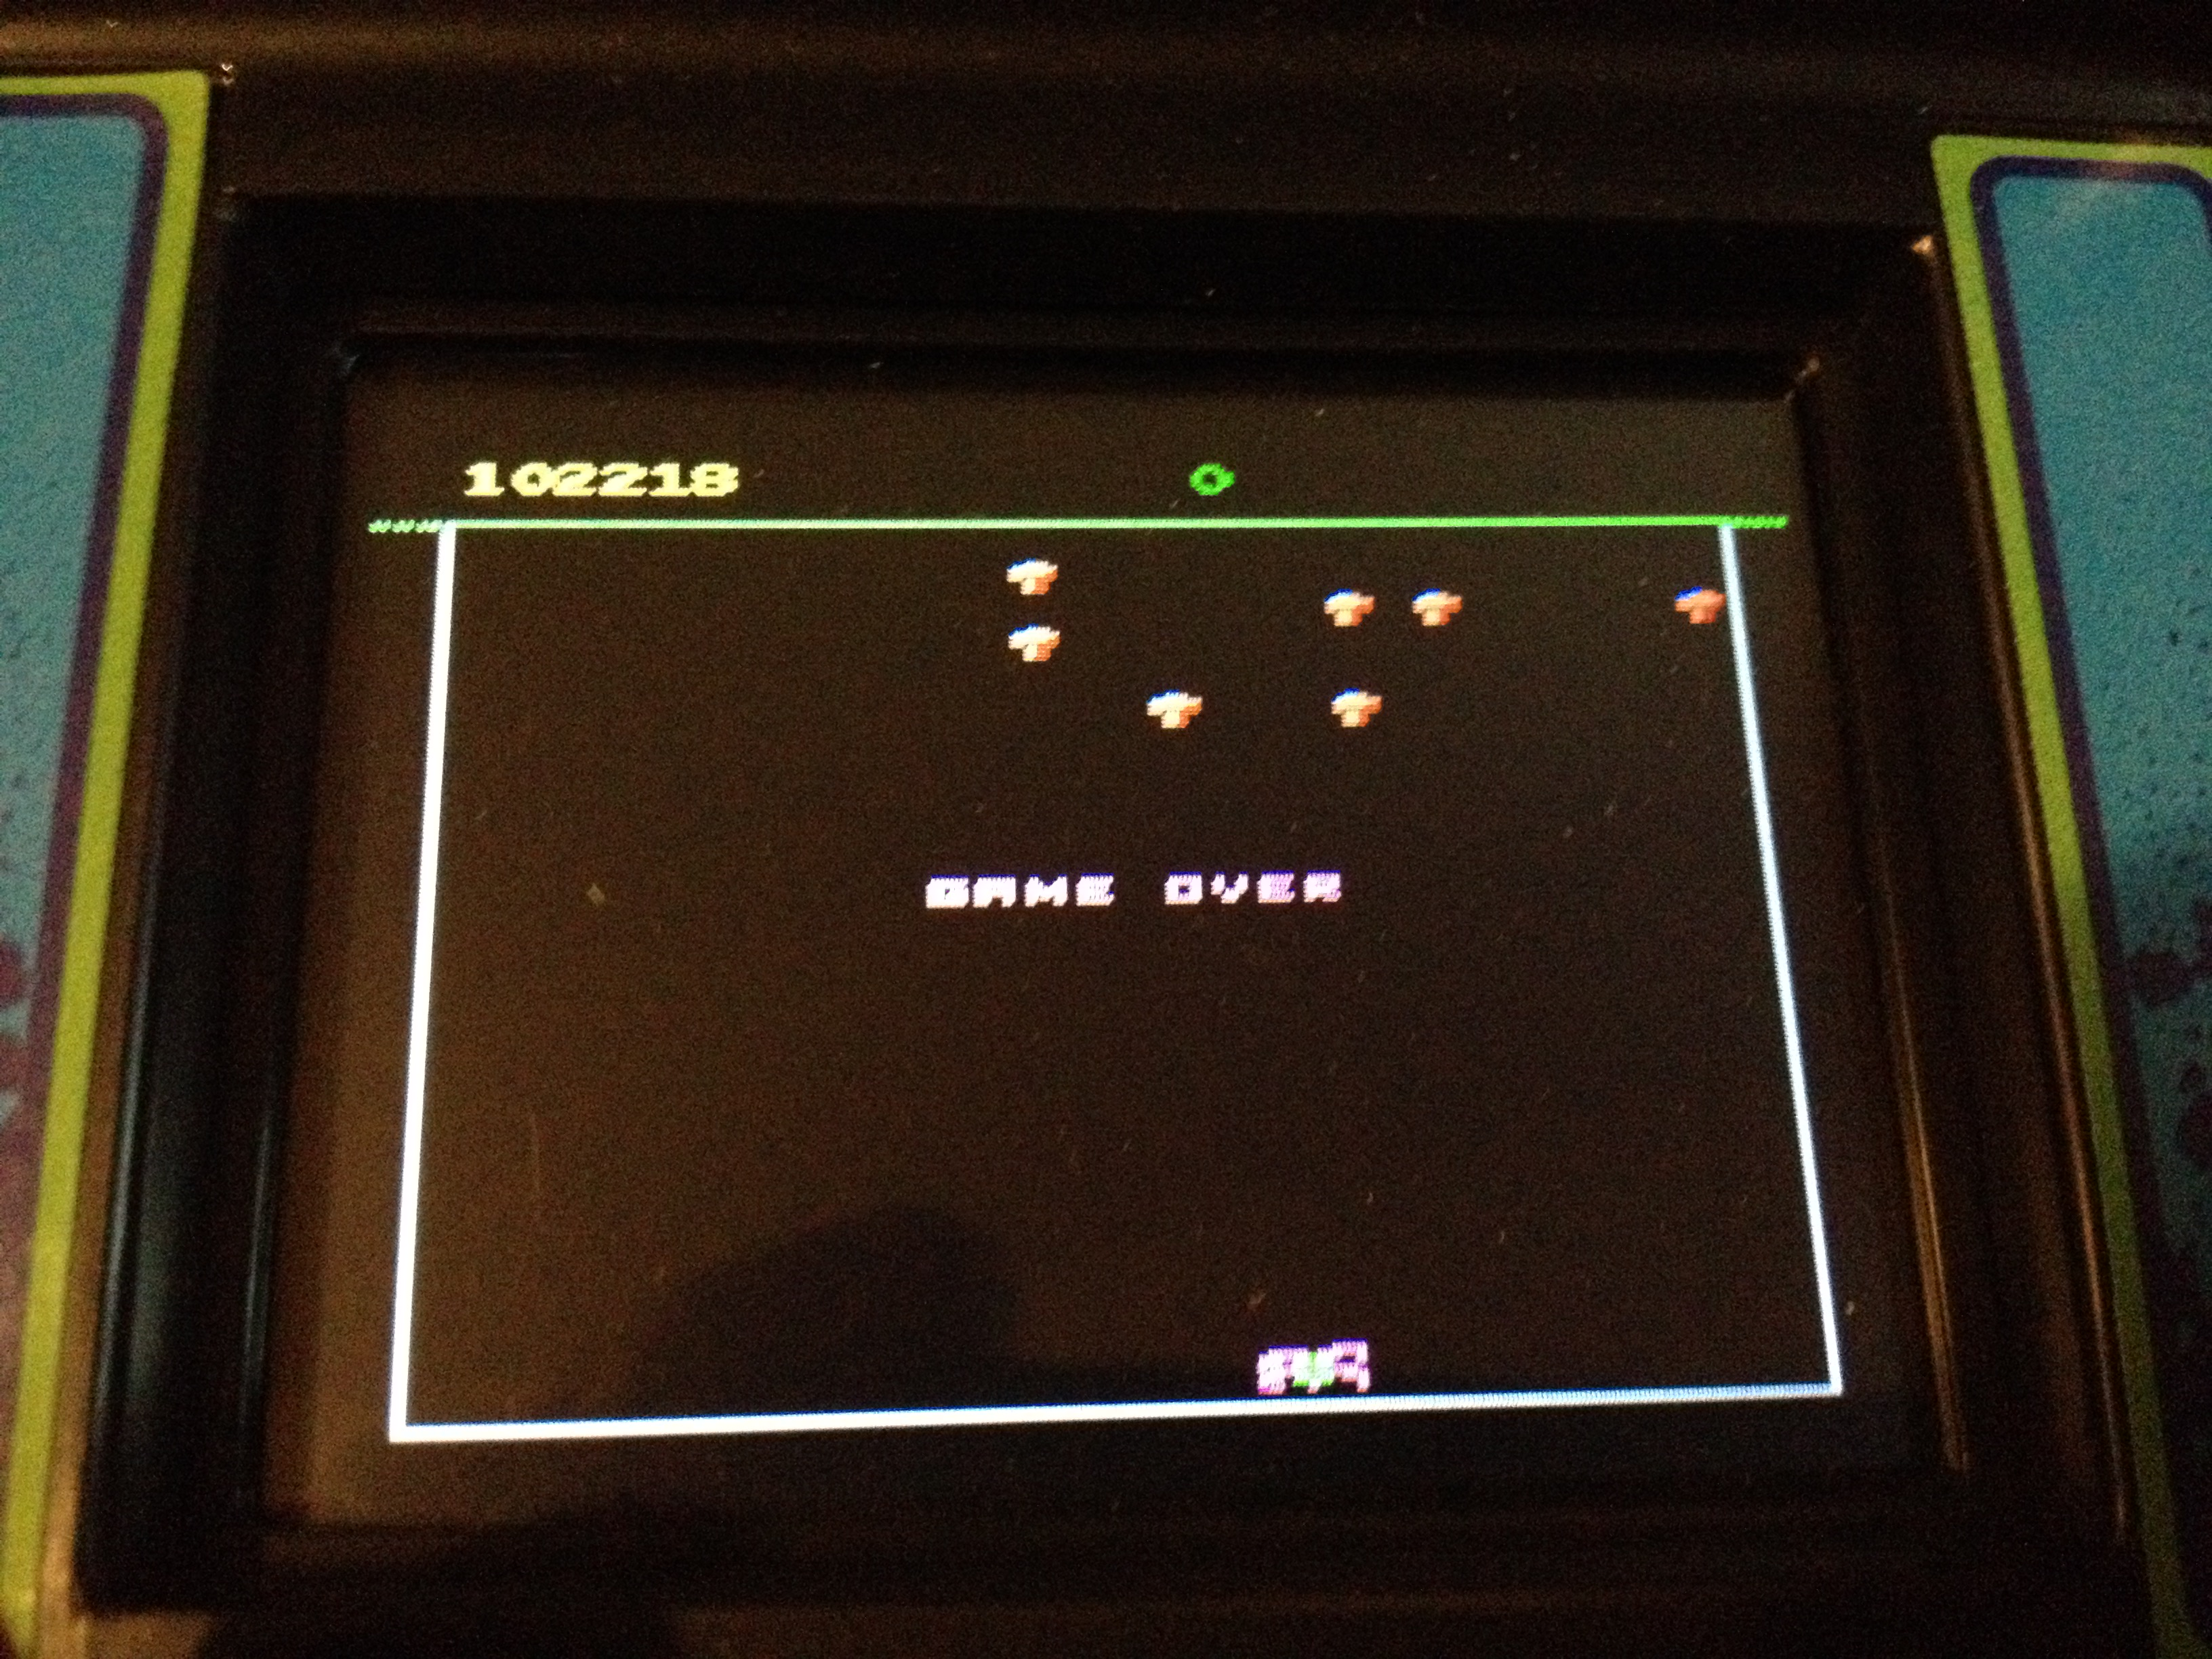 zerooskul: Arcade Classics 03: Centipede (Dedicated Handheld) 102,218 points on 2020-05-18 16:43:03